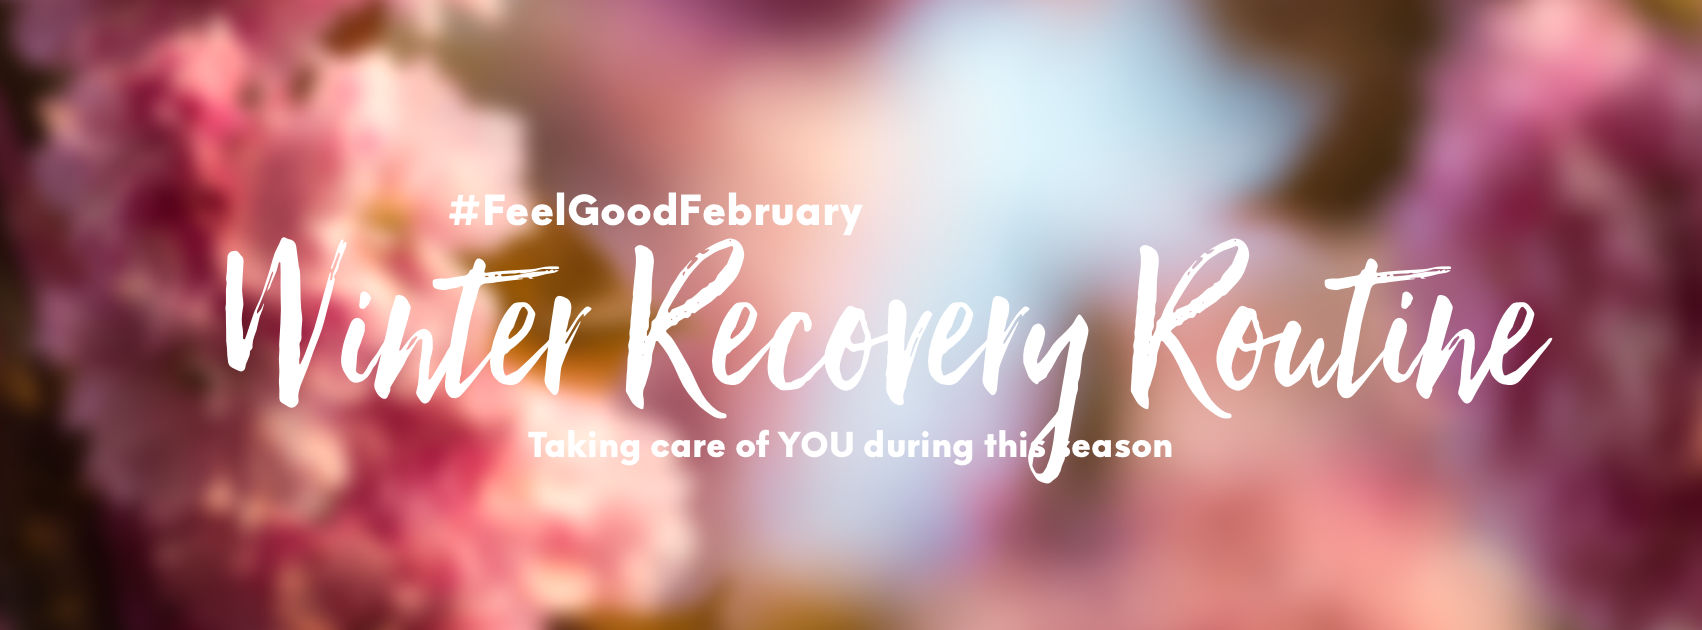 feel good February winter recovery routine, how to self care